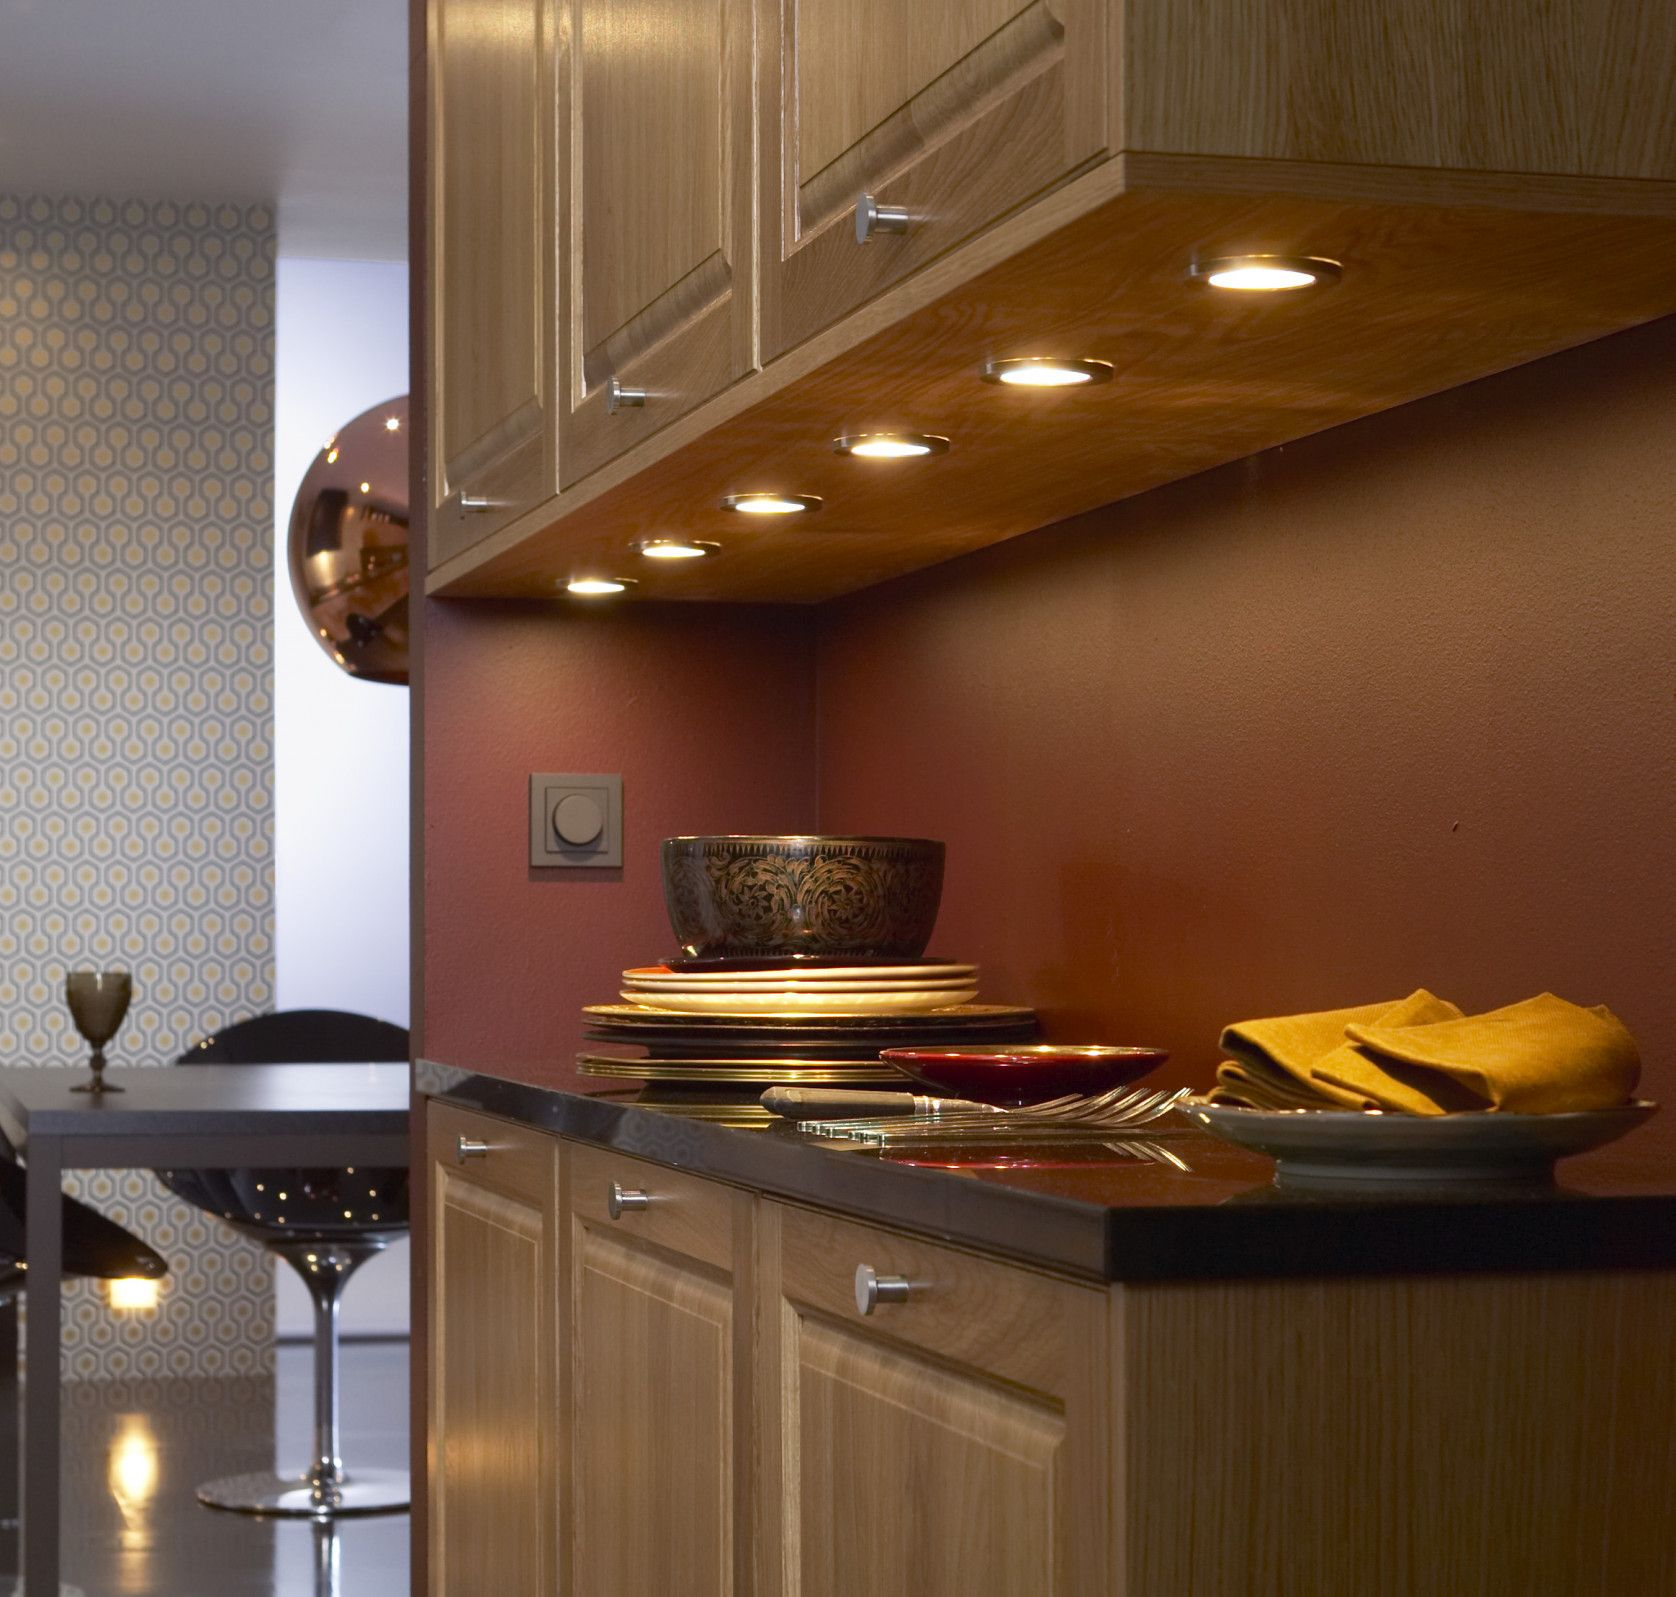 undermount kitchen lighting. 2019 Under Cabinet Kitchen Lighting Options - Small Island Ideas With Seating Check More At Undermount E